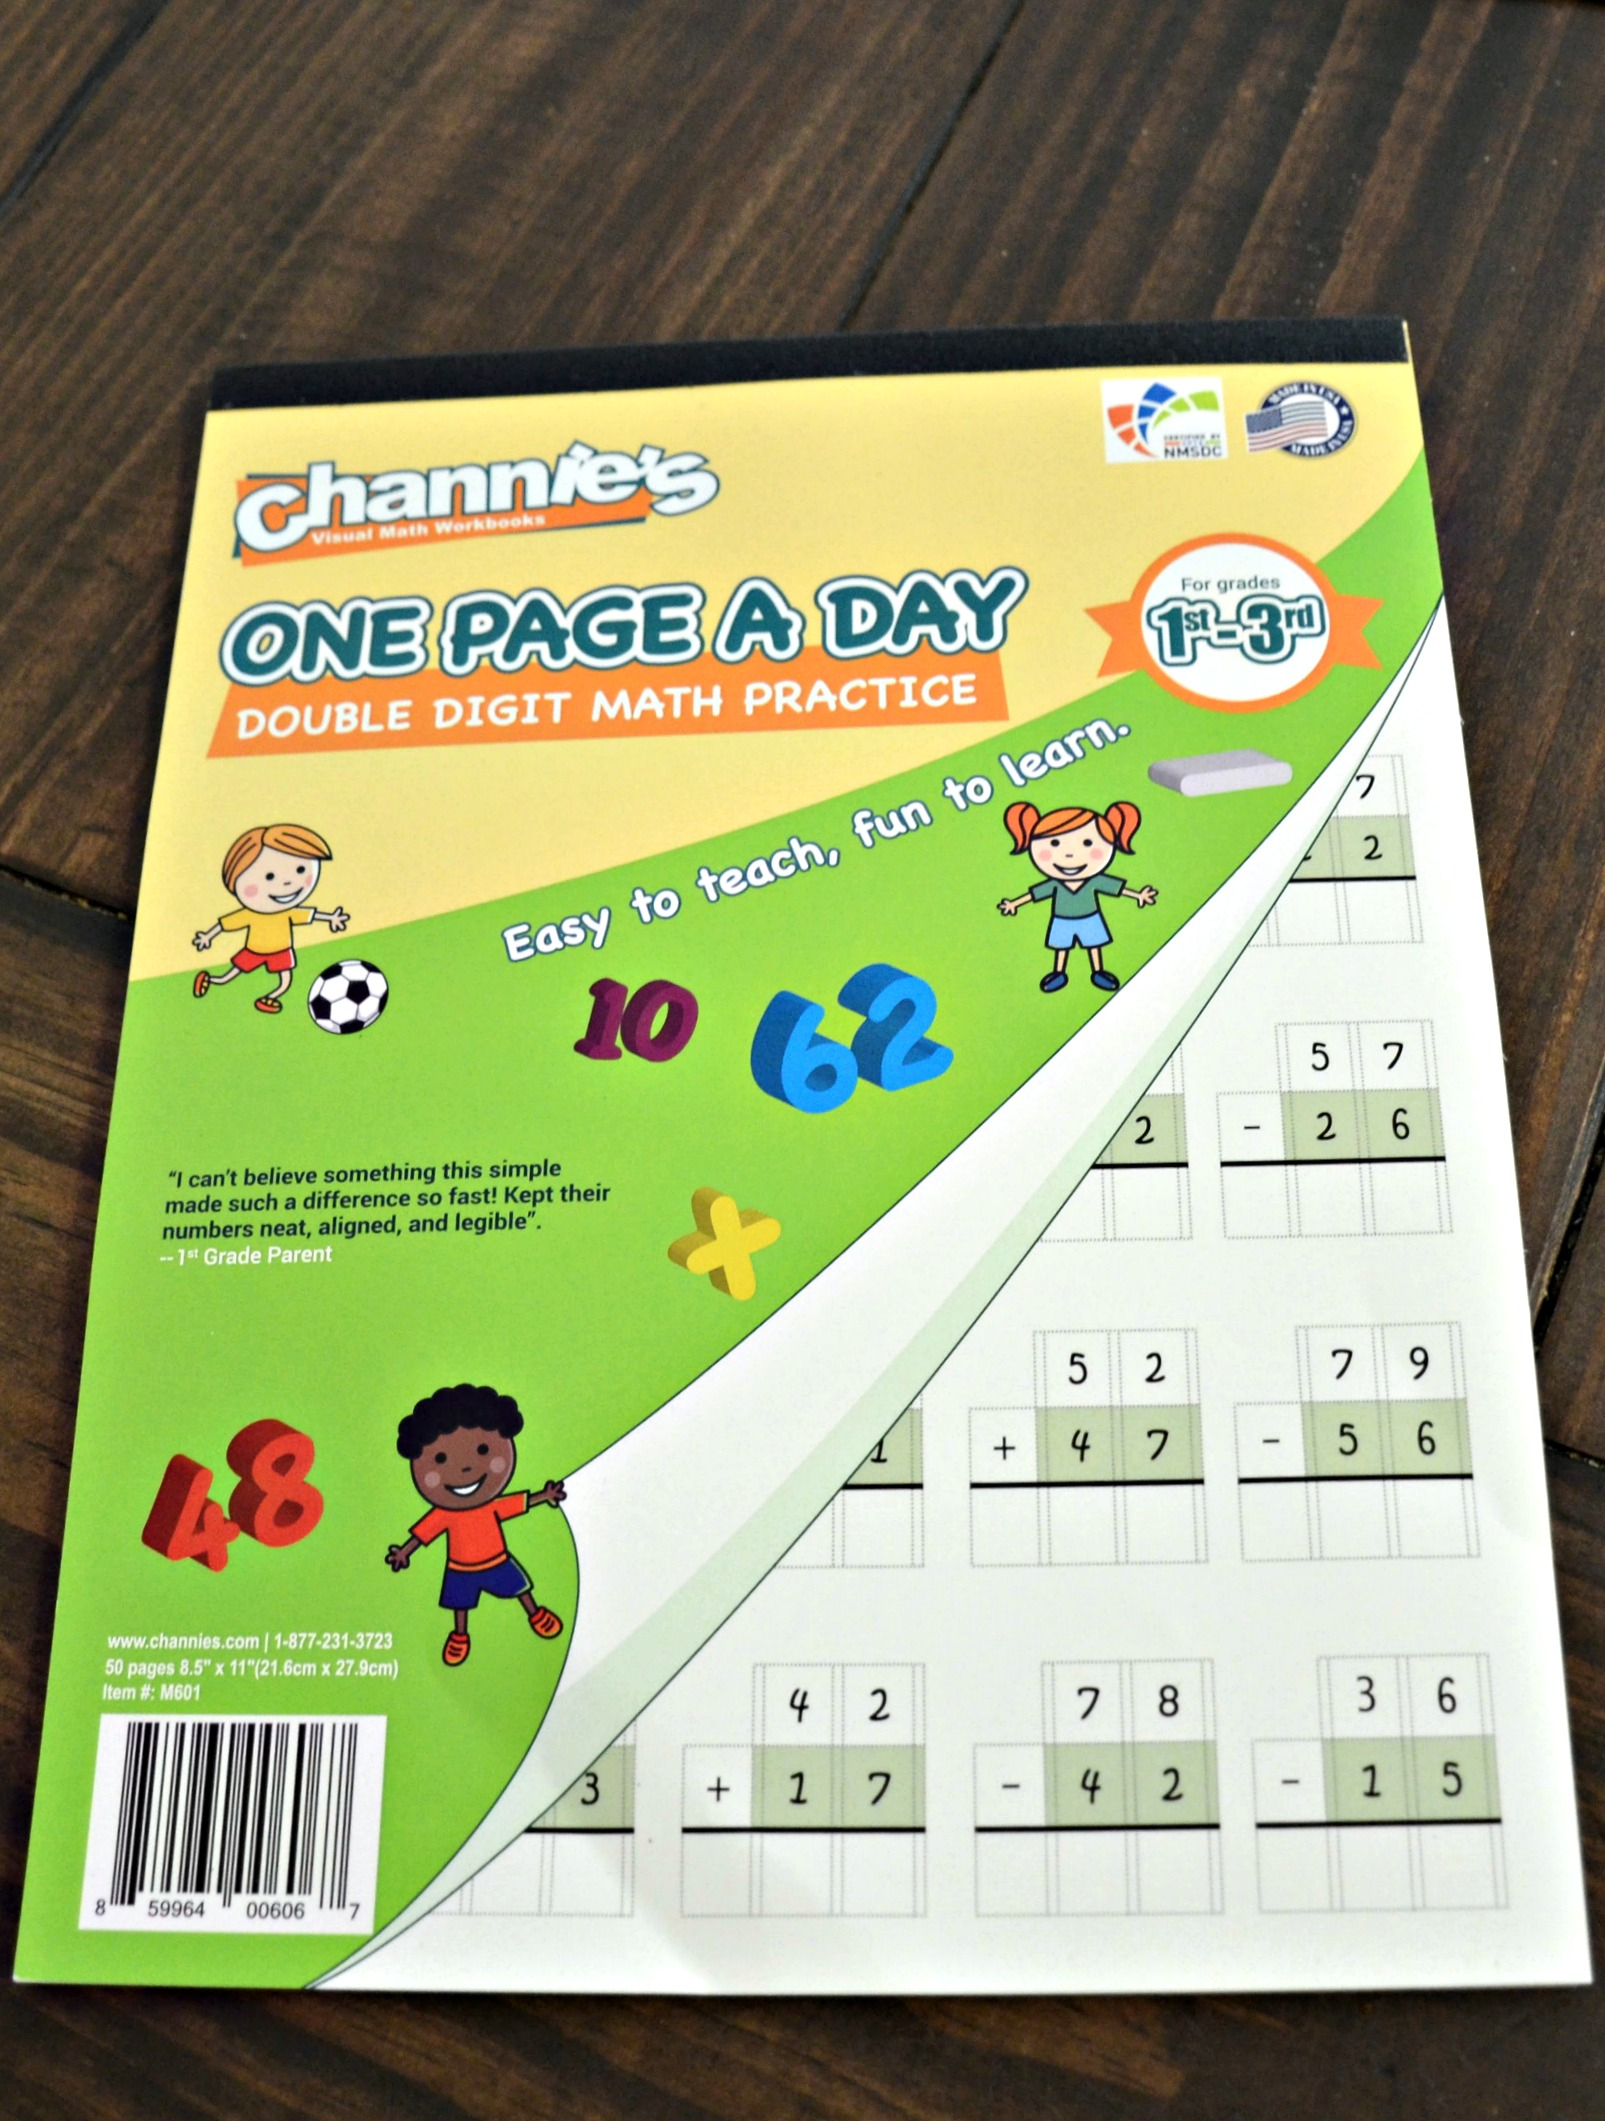 Channie's One Page a Day Double Digit Math Practice Workbook